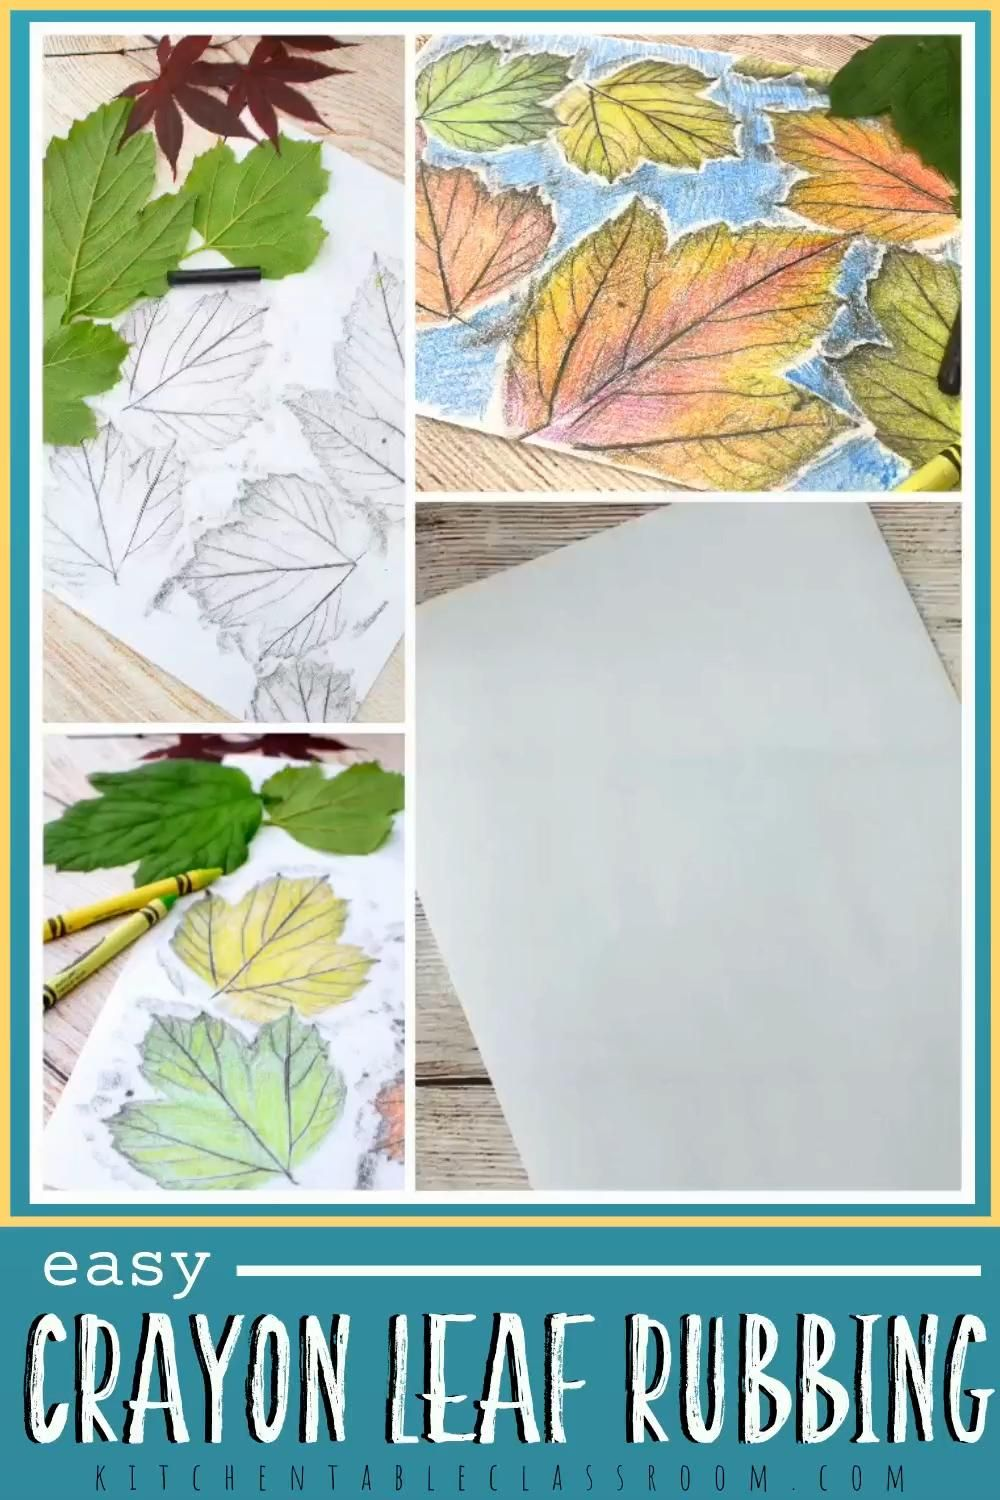 Easy Crayon Leaf Rubbing for Kids